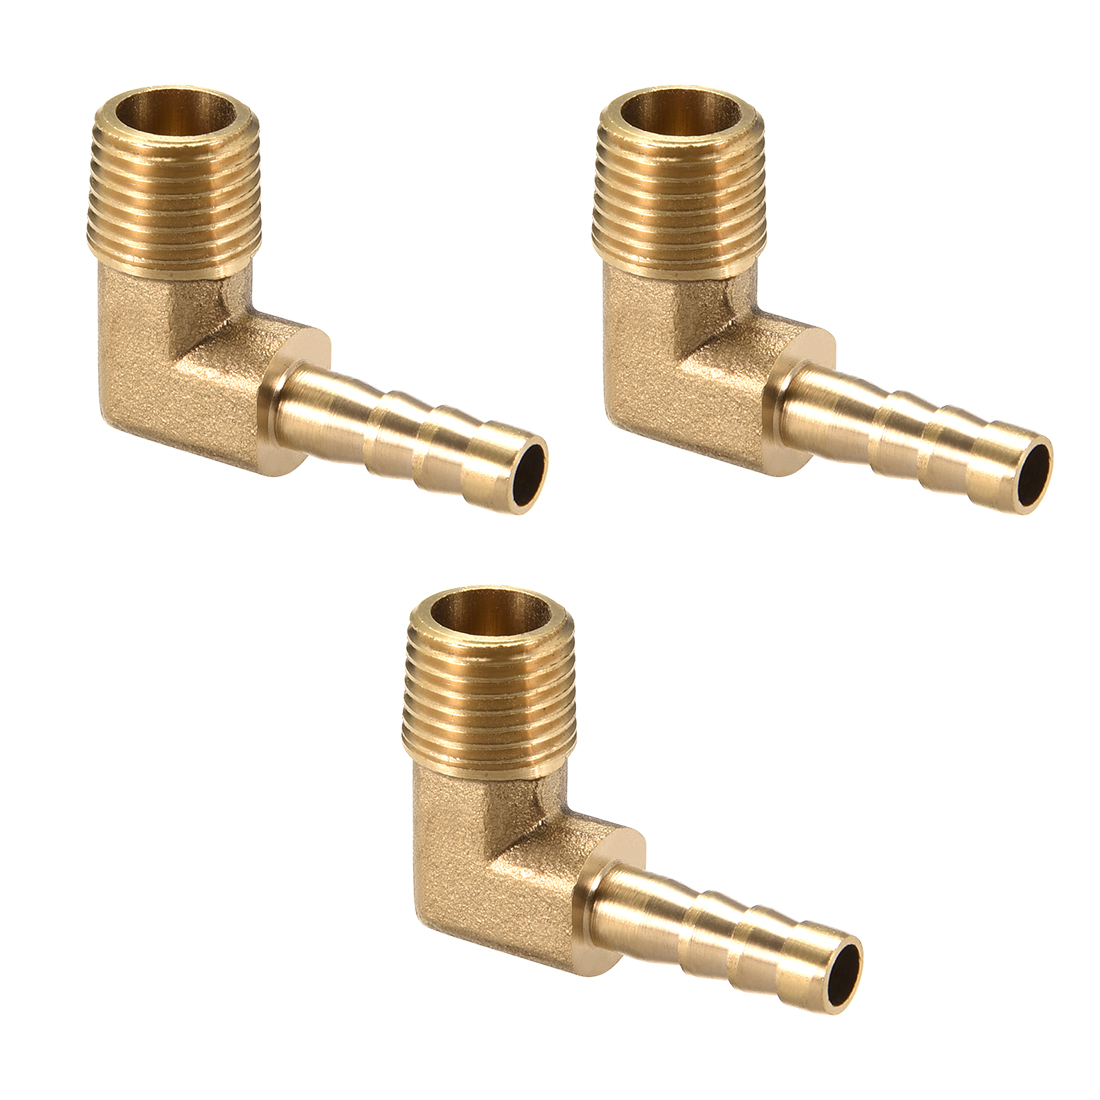 """Brass Barb Hose Fitting 90 Degree Elbow 6mm Barbed x 1/4"""" G Male Pipe 3pcs"""